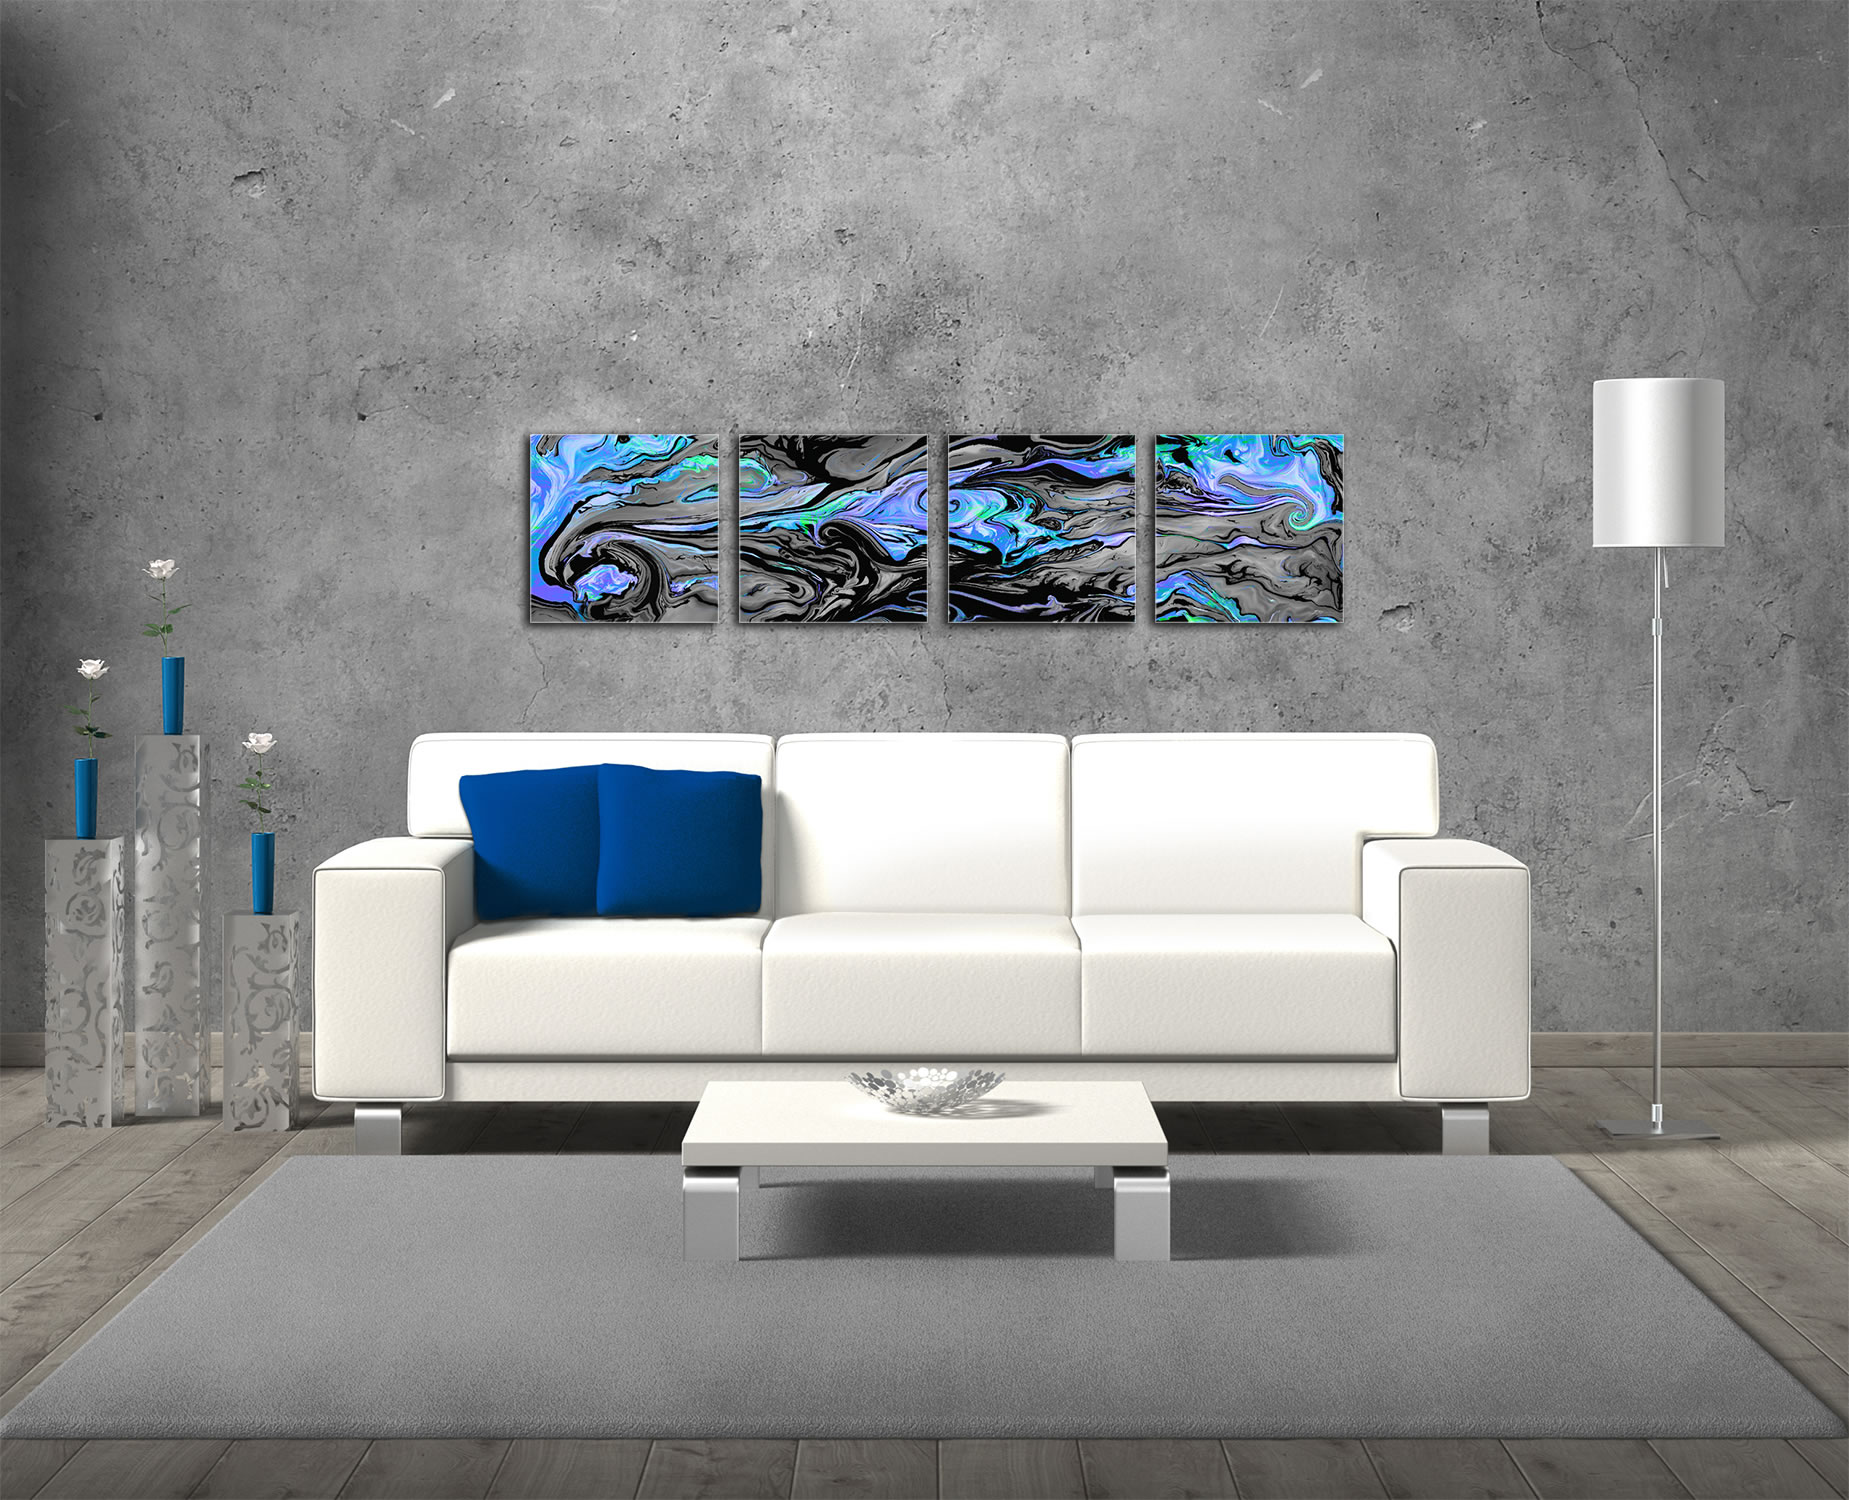 Lava Blue - Reverse-Print Acrylic Abstract Art - Lifestyle Image